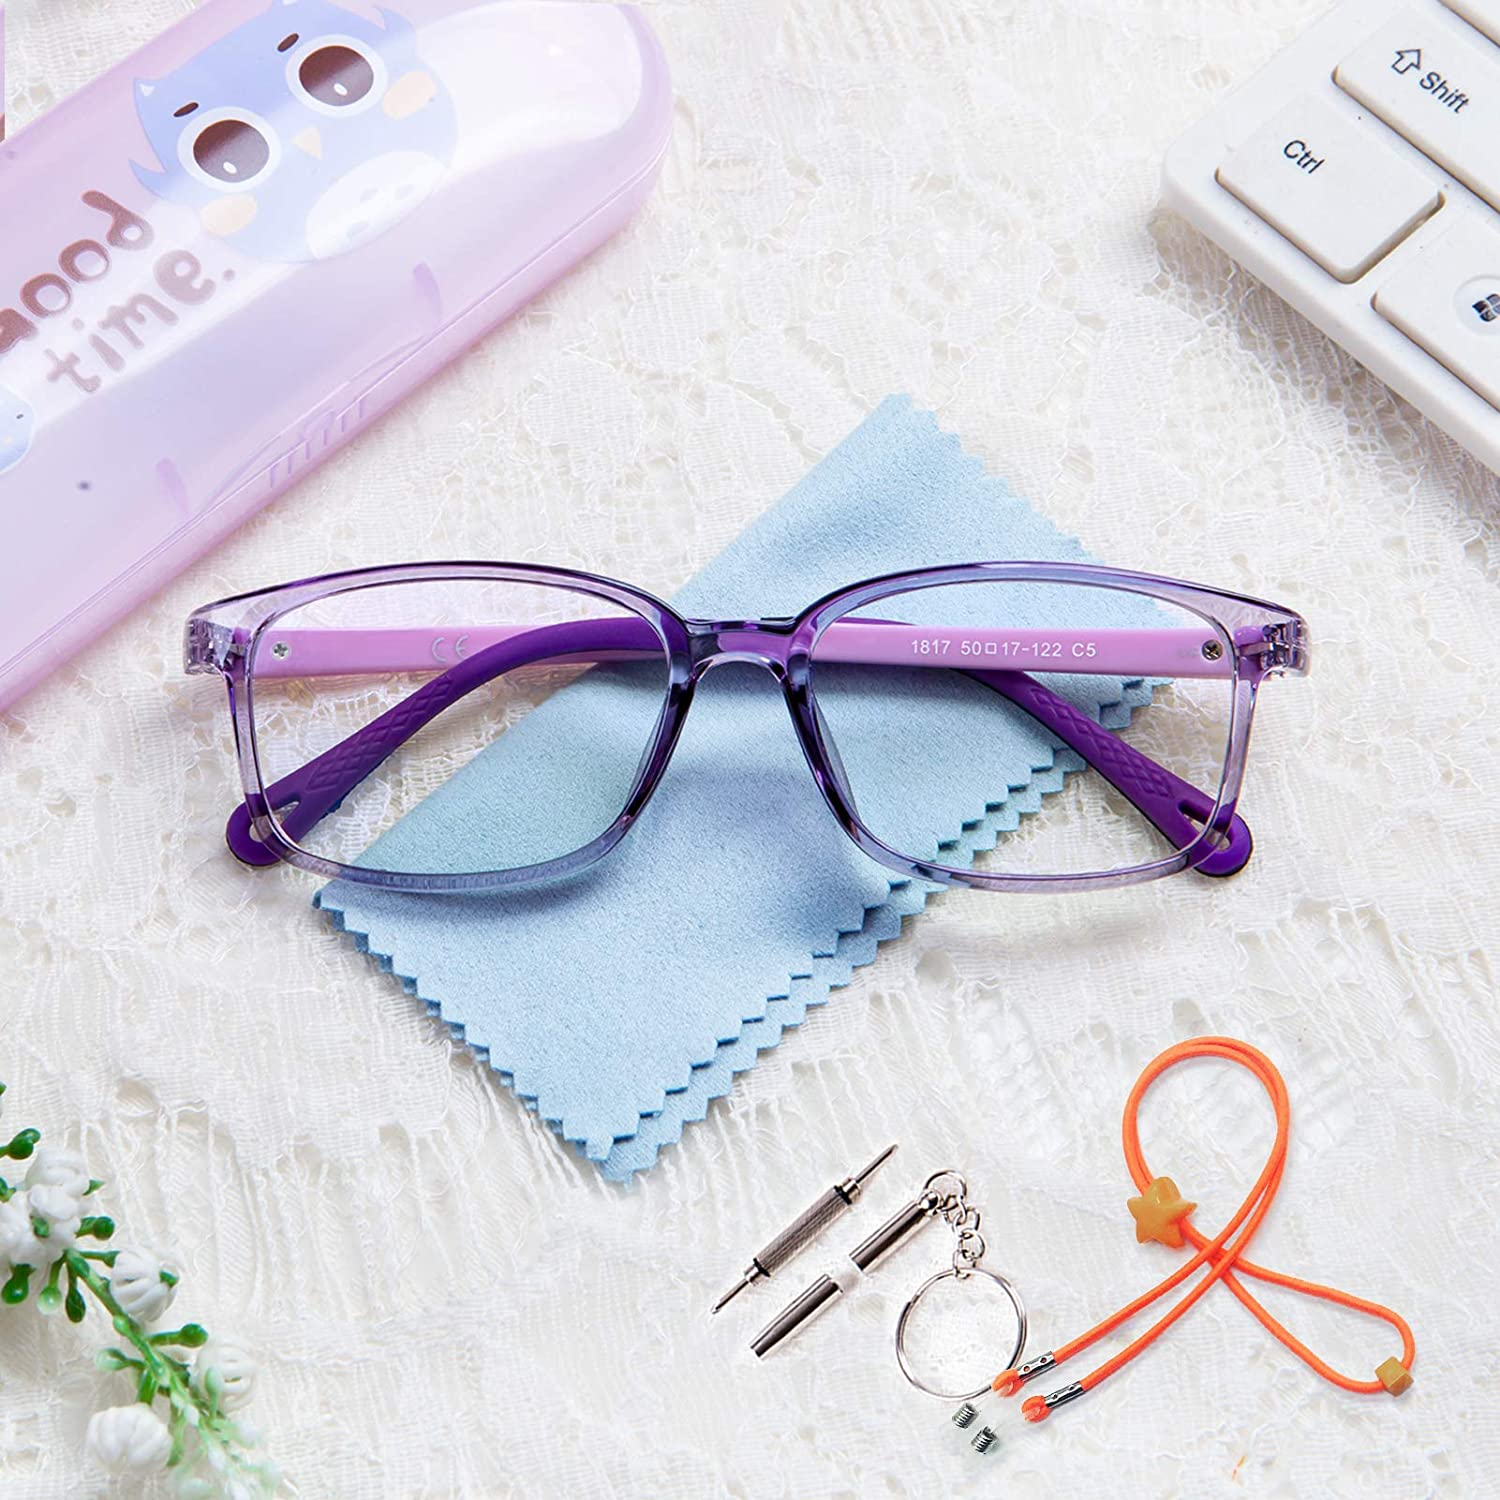 Blue Light Blocking Glasses Safety and trust for Kids with Case Max 56% OFF